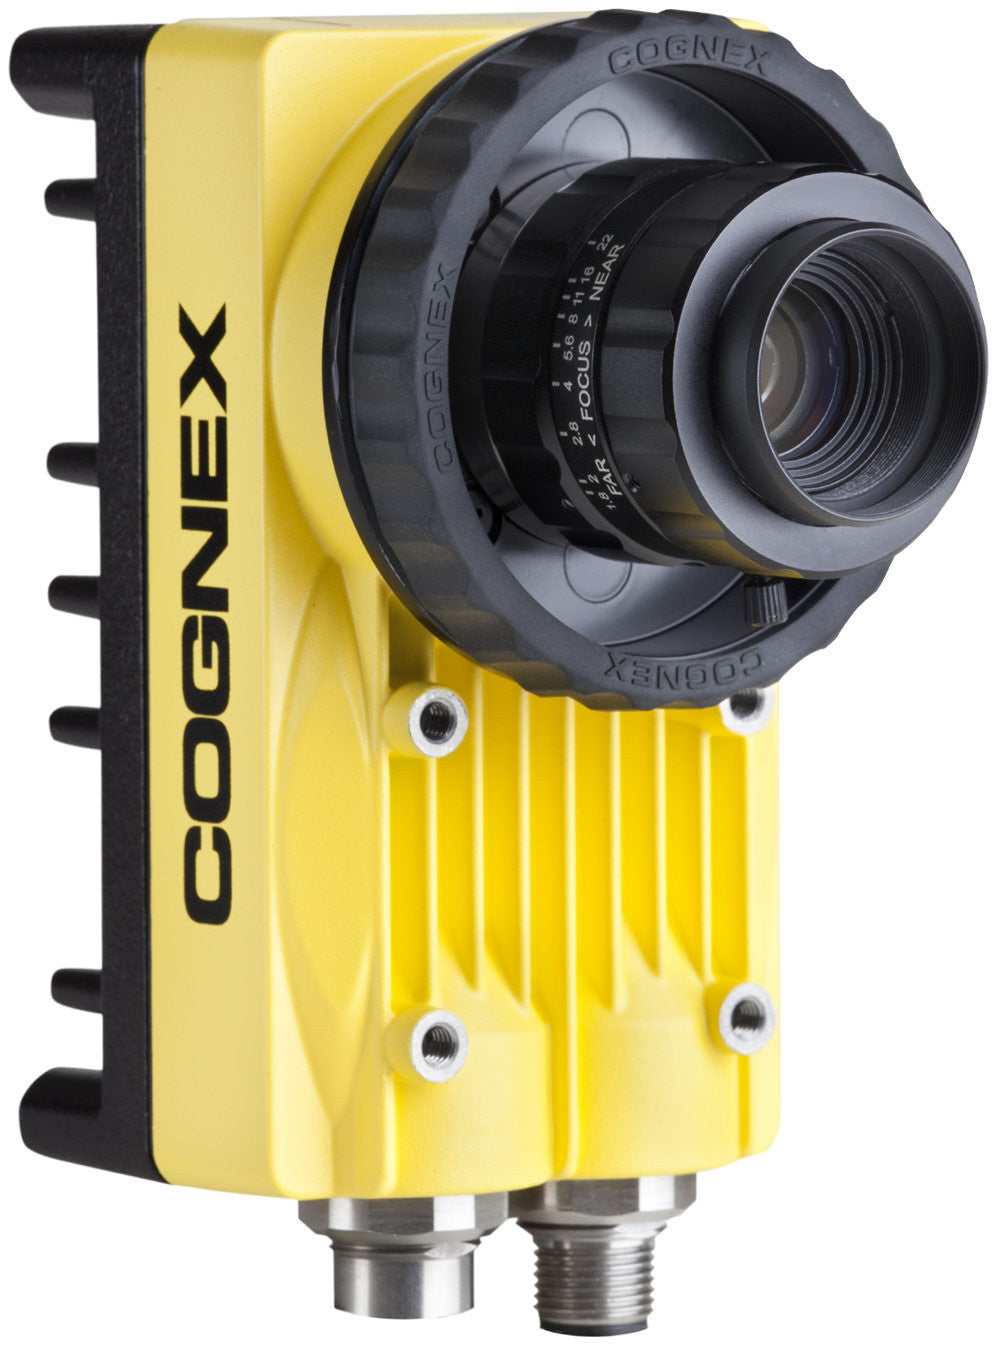 Photo of Cognex IS5605-11 In-Sight With PatMax Machine Vision Camera 5605-11 5605